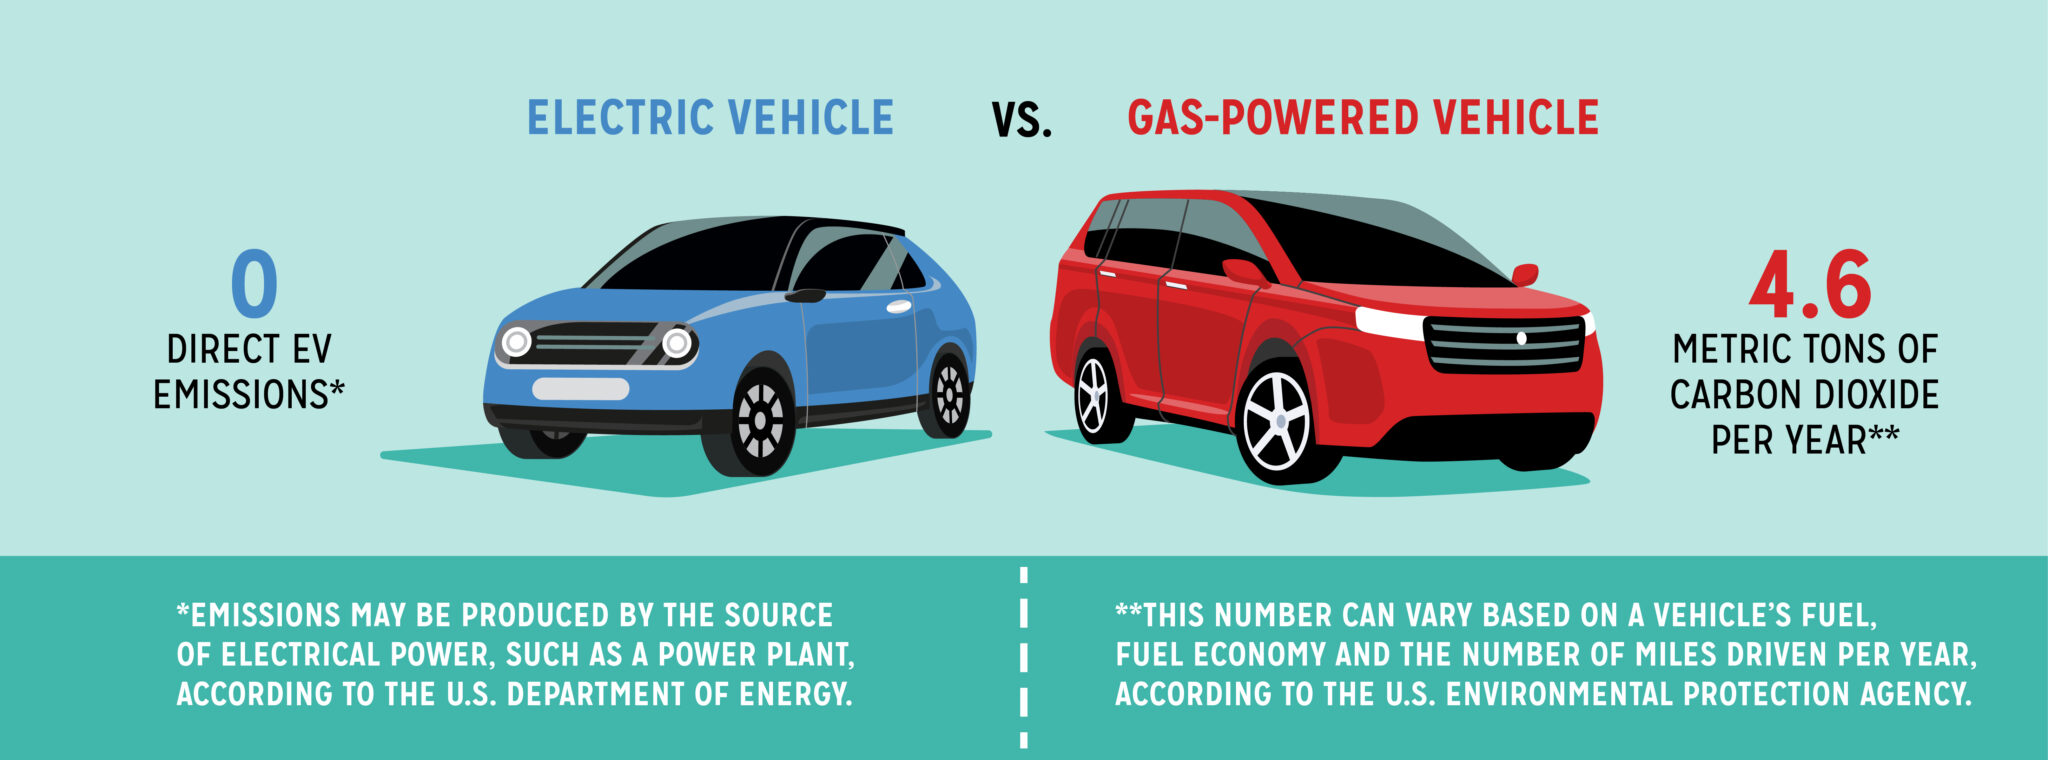 questions-about-electric-car-emissions